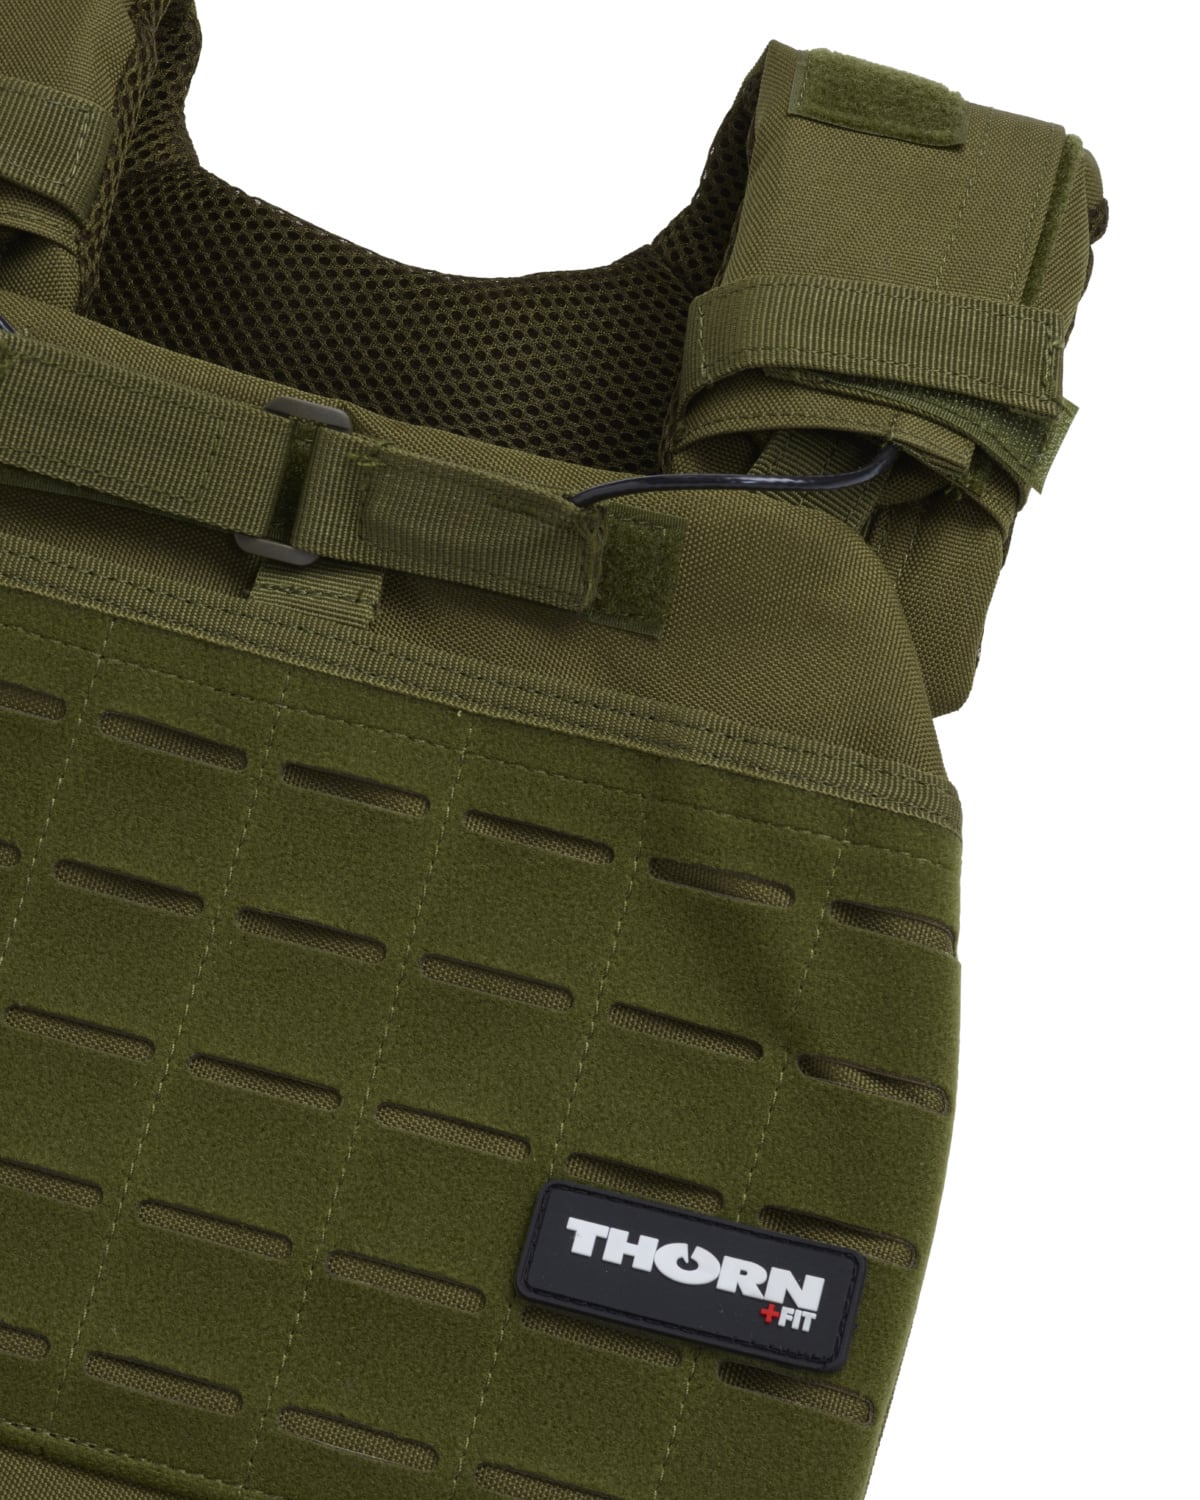 Thorn+Fit Tactical vest Army Green 7